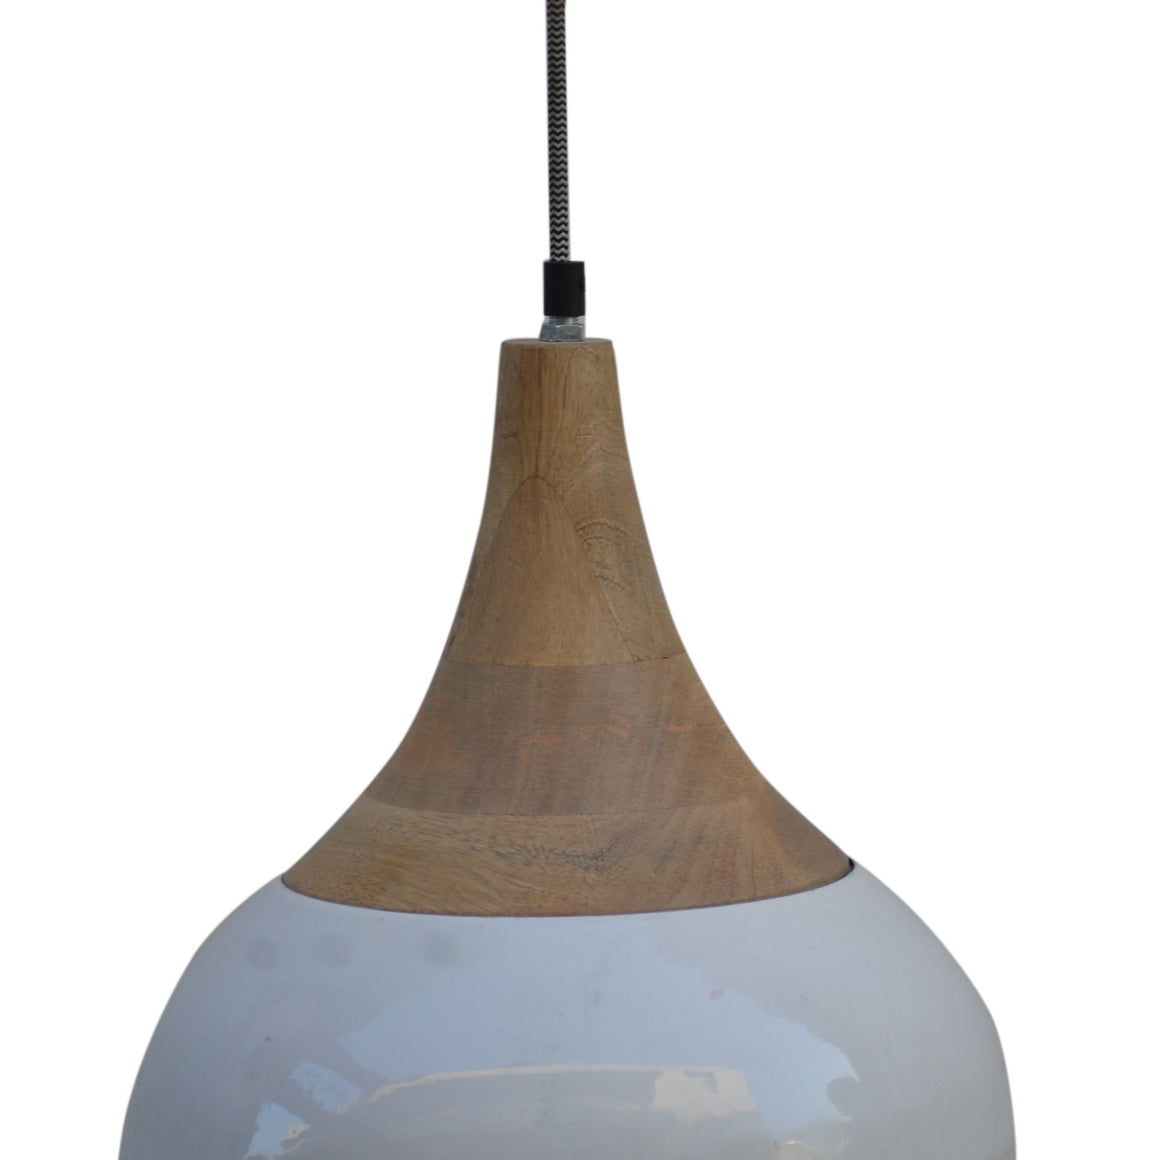 STEEL TEAR DROP LAMPSHADE Philbee Interiors